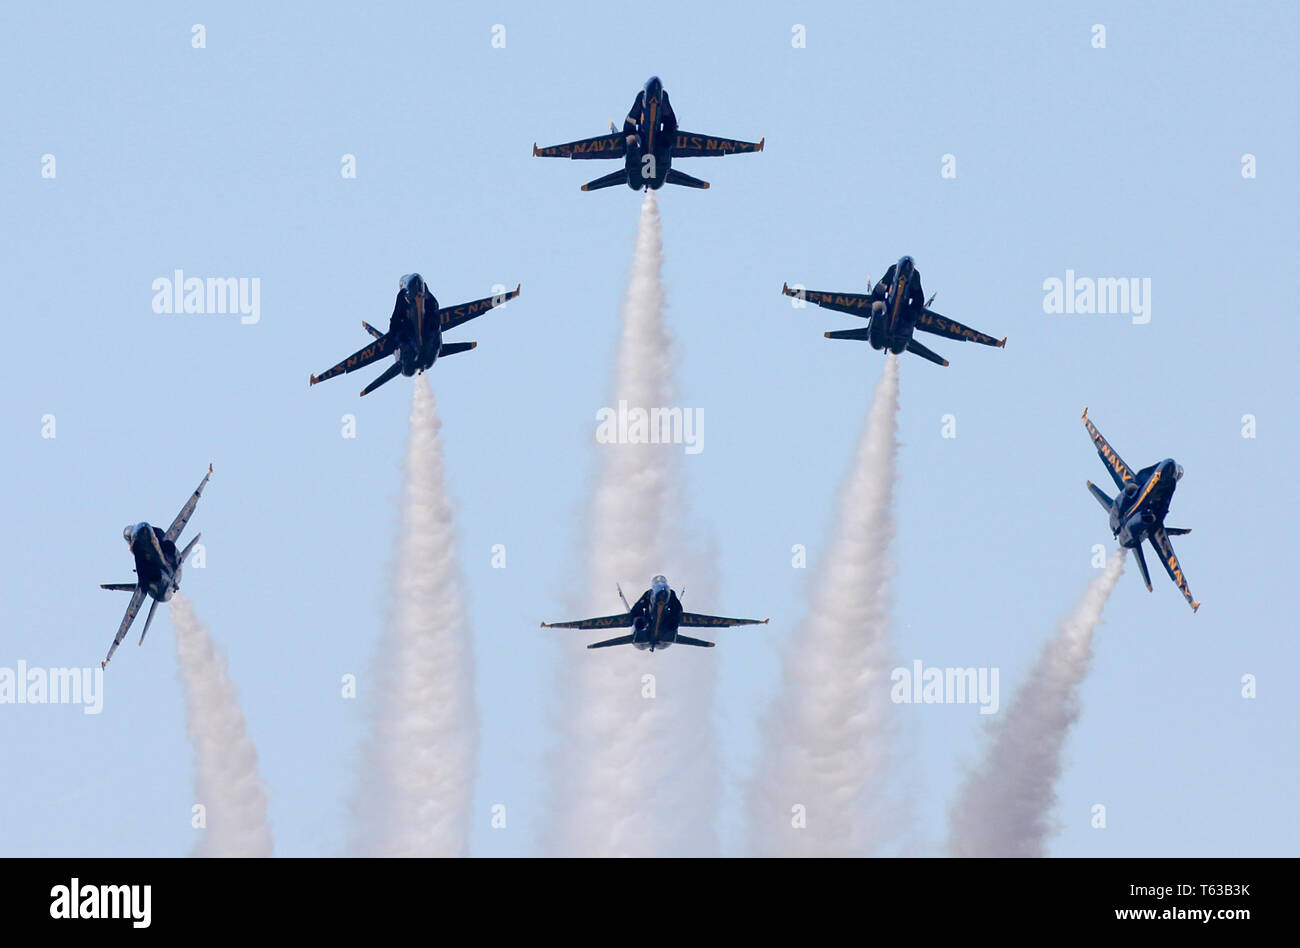 U S Air Force Officer Stock Photos & U S Air Force Officer